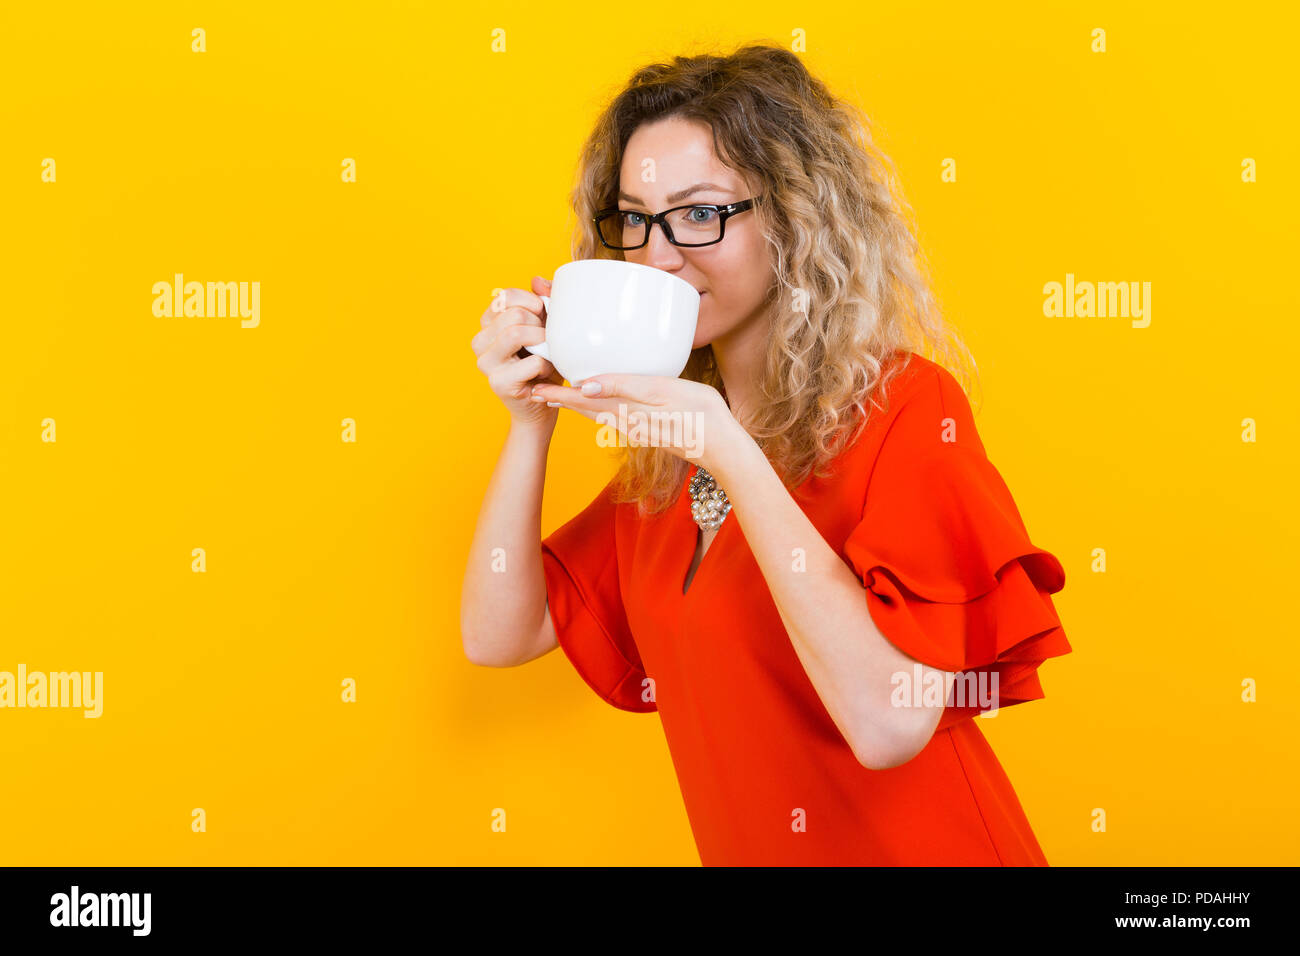 Woman in dress with cup - Stock Image